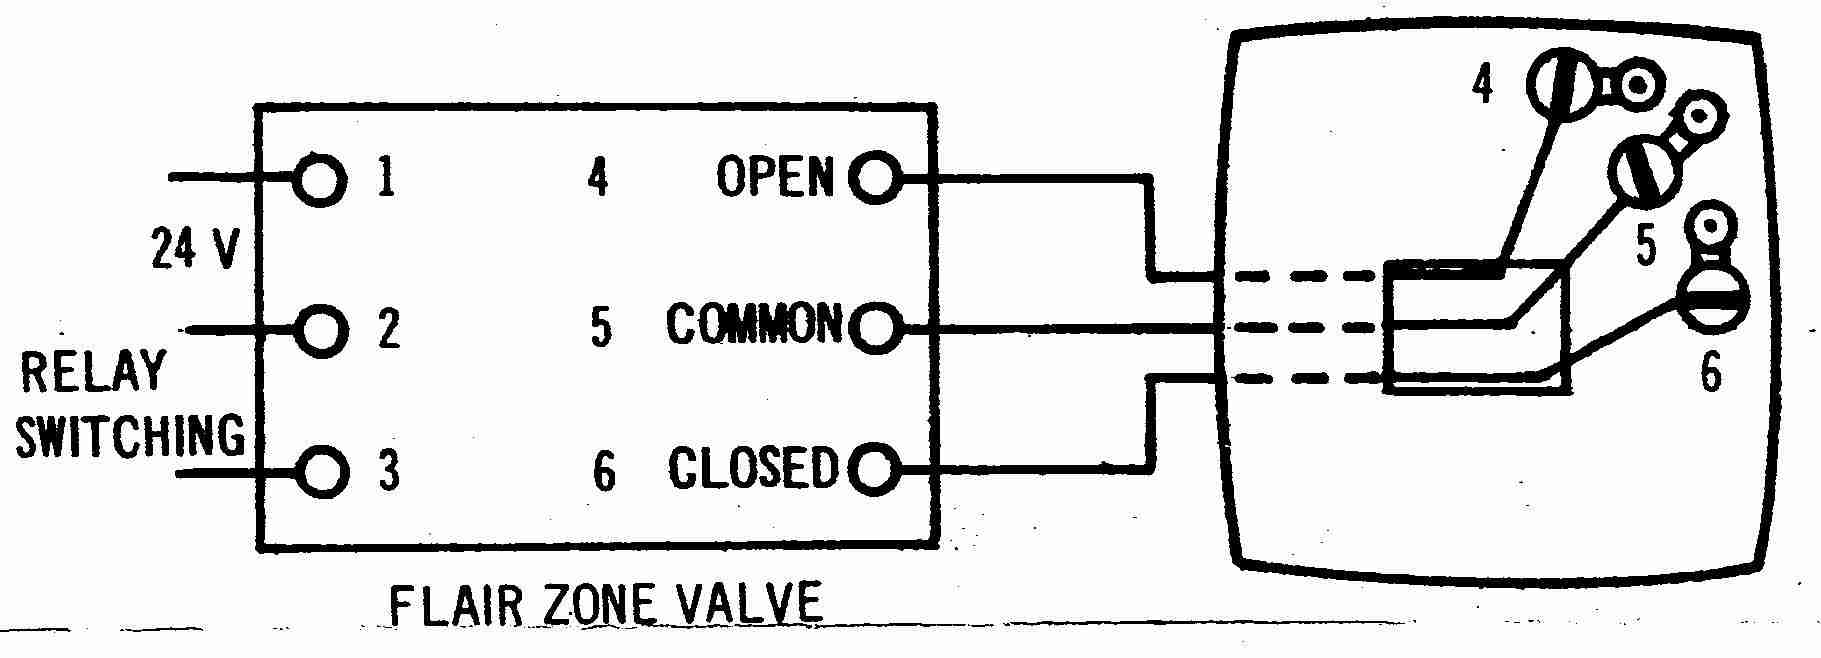 zone valve wiring installation instructions guide to heating rh inspectapedia com honeywell zone valve wiring colours honeywell zone valve wiring guide